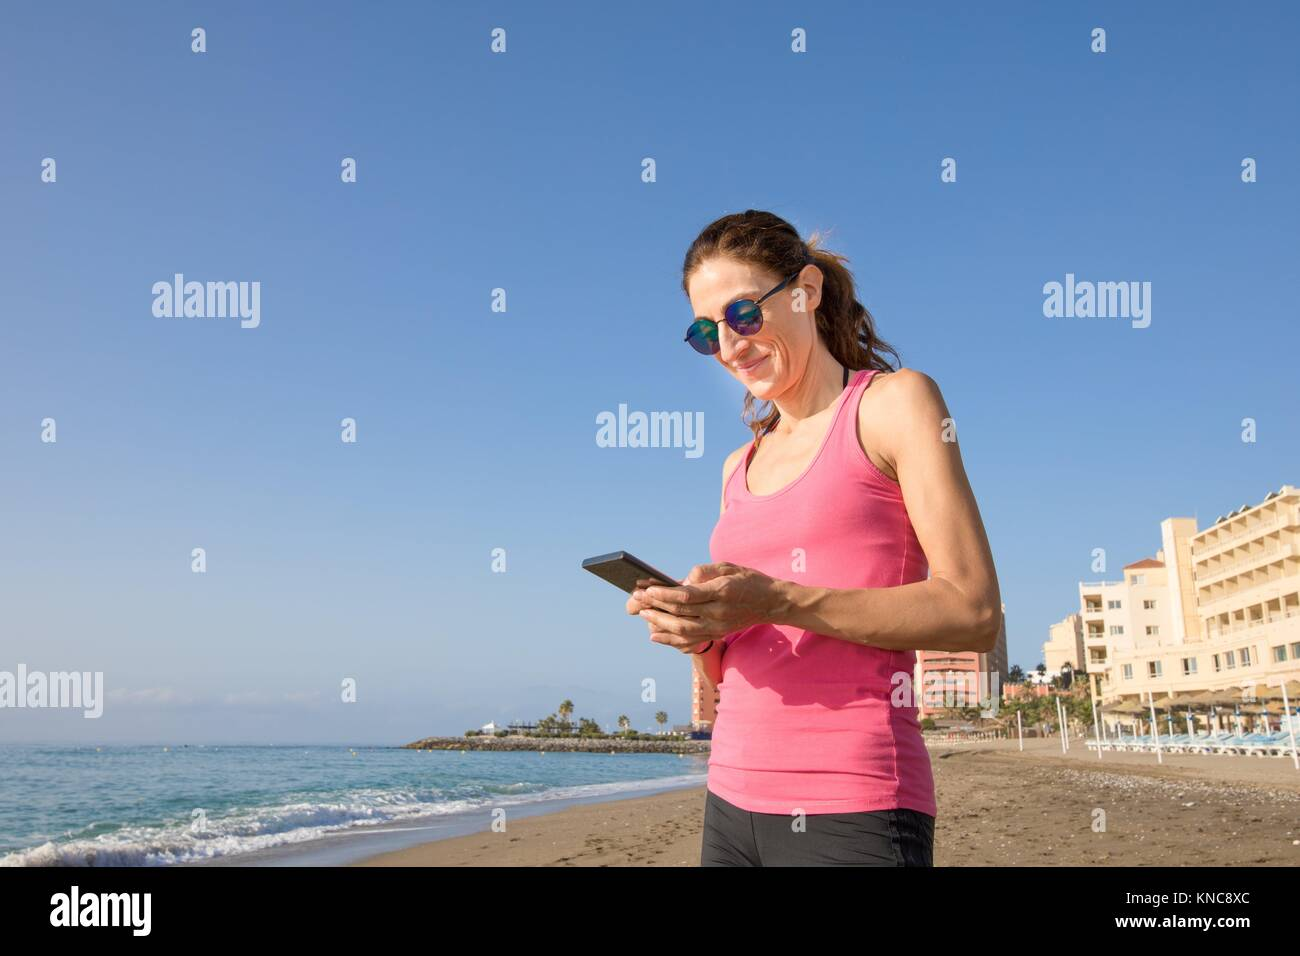 woman with pink sleeveless t-shirt smiling and touching mobile phone smartphone at beach with sea and buildings - Stock Image